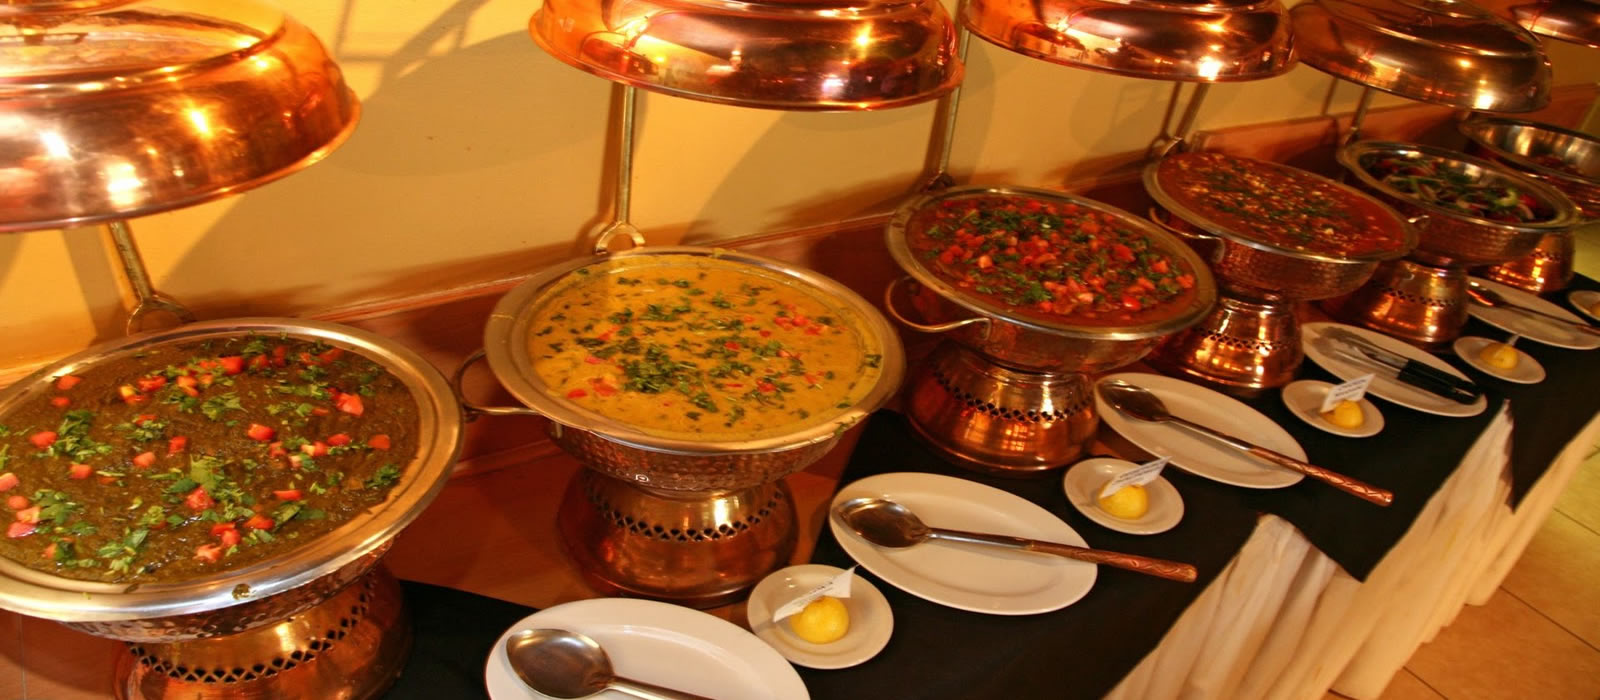 Catering service kadru in ranchi g k electronics for Catering companies